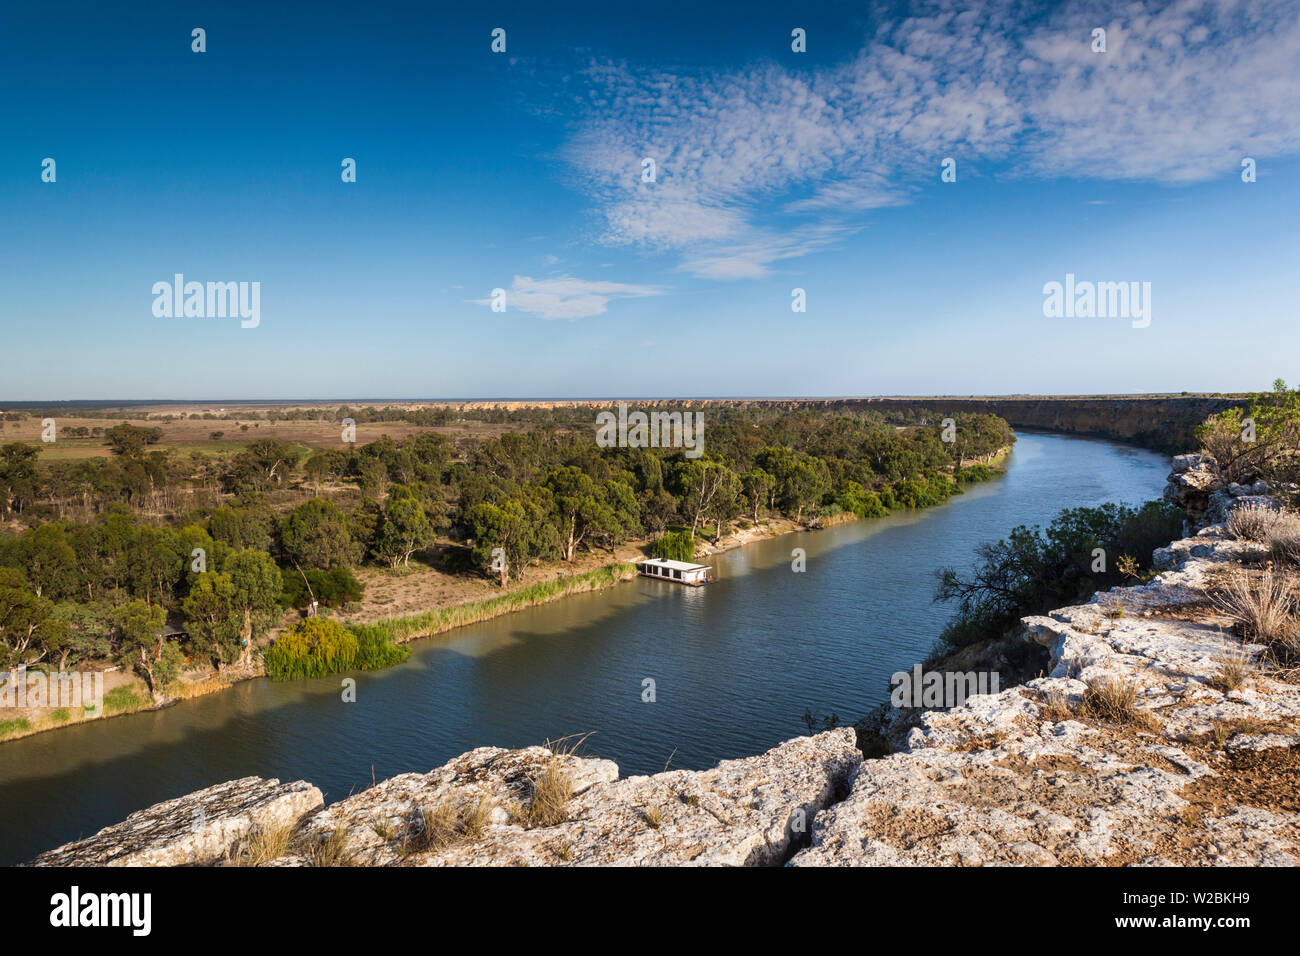 L'Australie, l'Australie, Murray River Valley, Swan Reach, Murray River, elevated view Banque D'Images